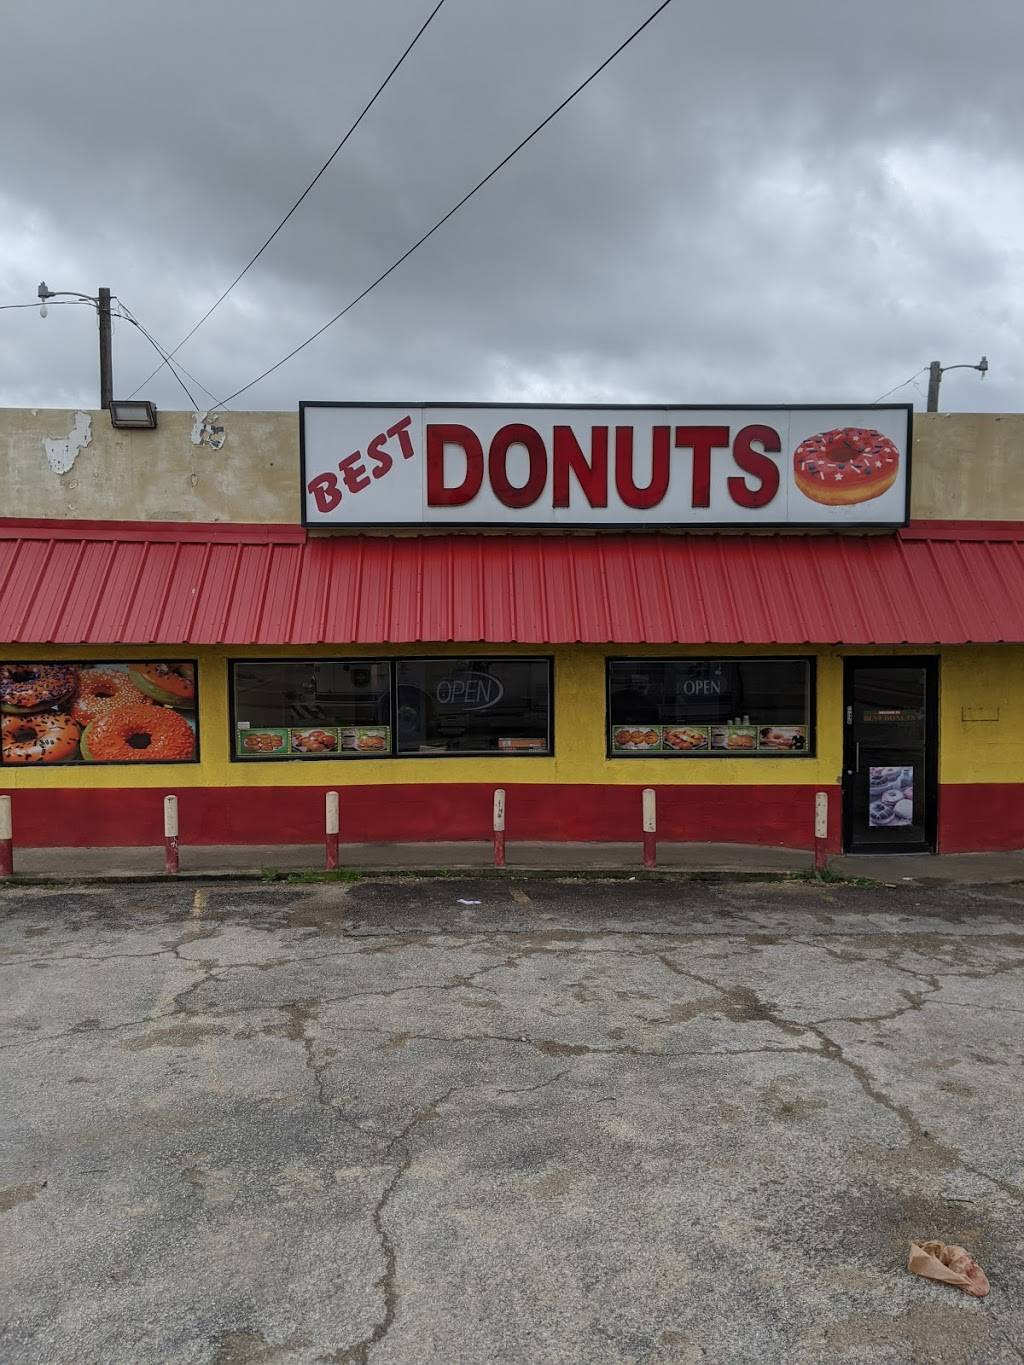 Best Donuts - bakery  | Photo 2 of 2 | Address: 2400 NE 28th St, Fort Worth, TX 76106, USA | Phone: (682) 250-6948